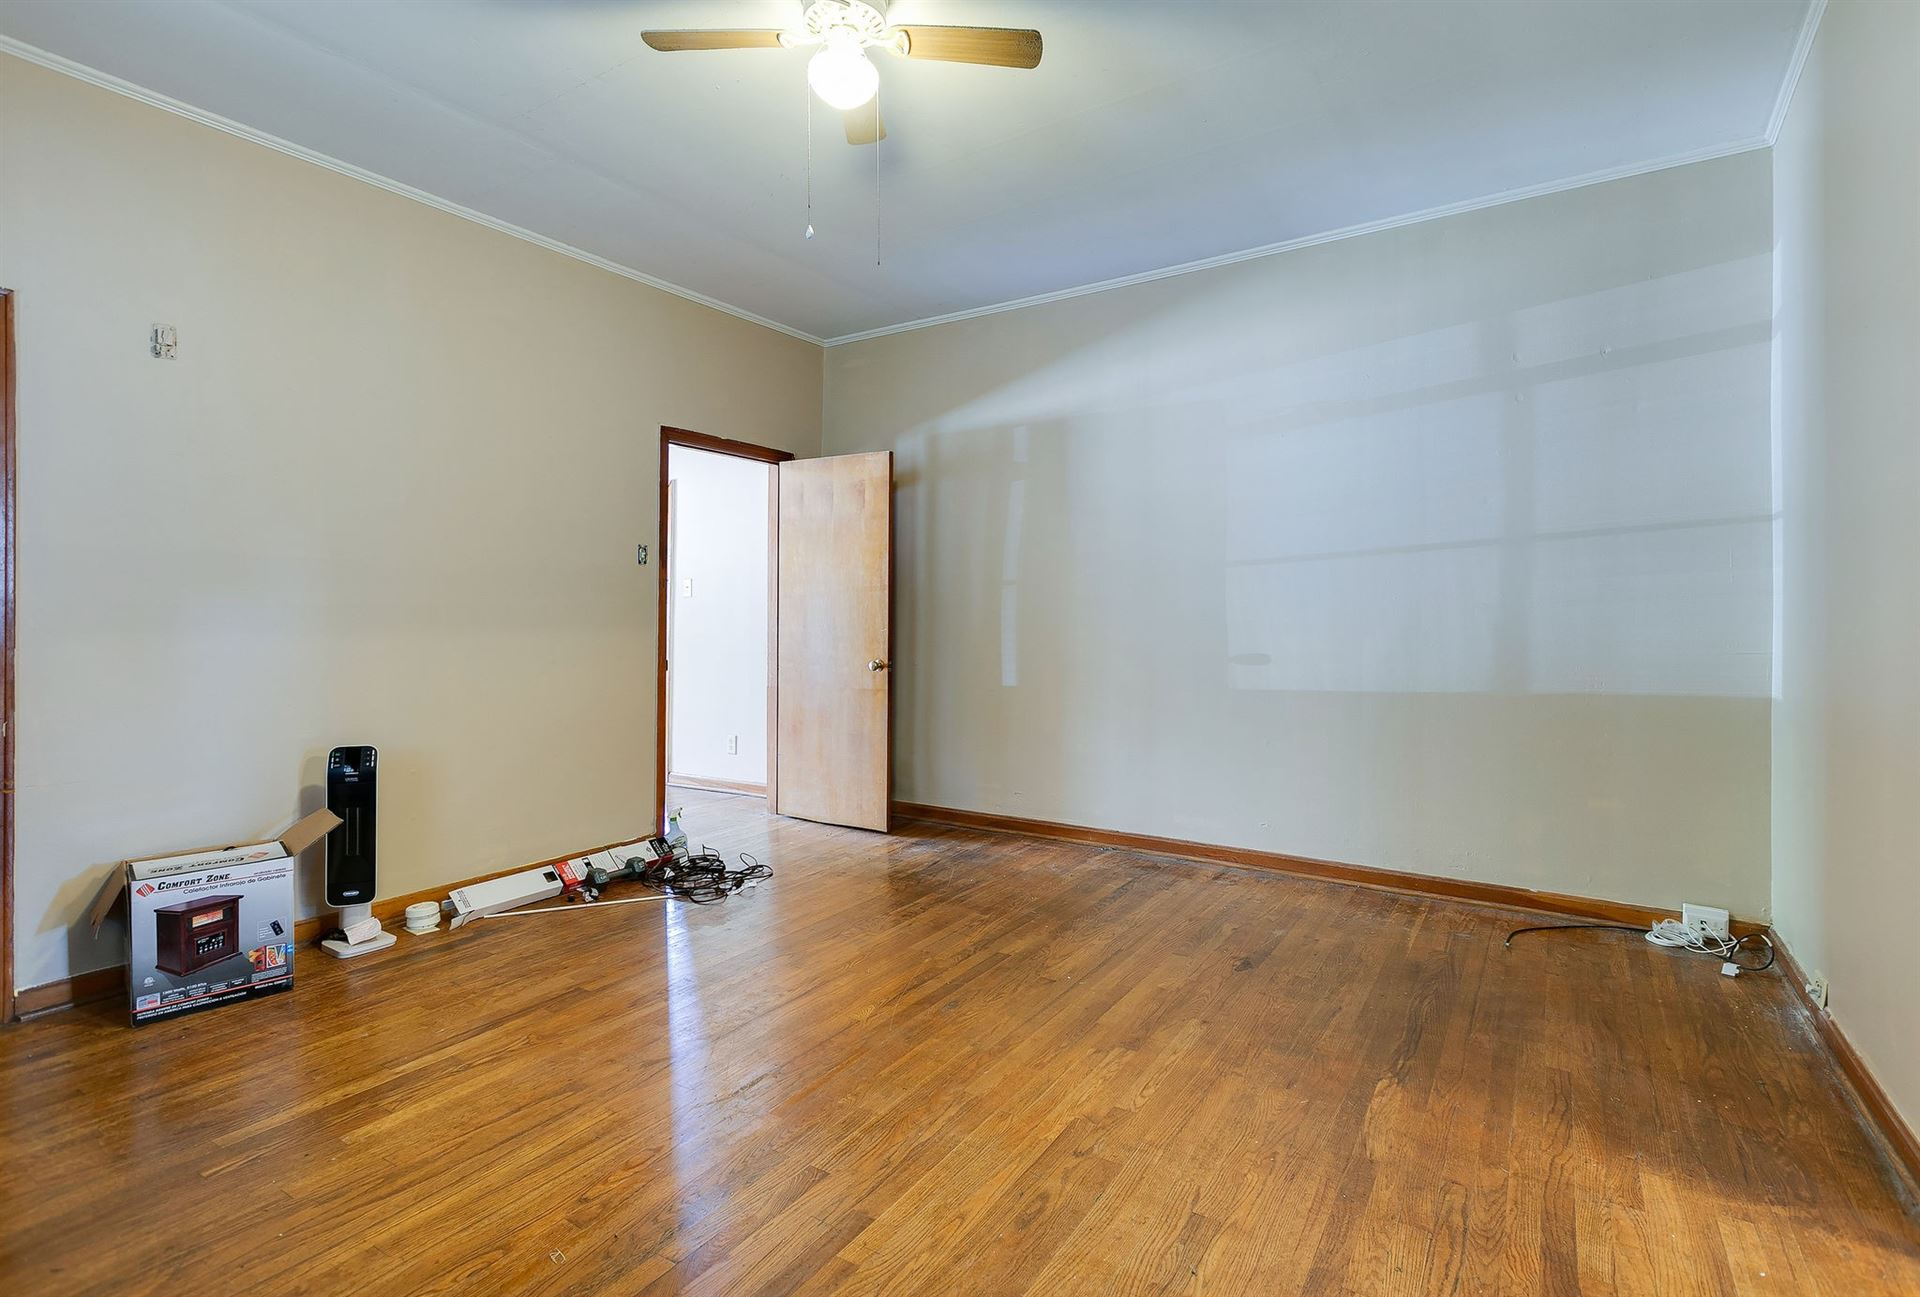 Property Image Of 212 3Rd Ave In Columbia, Tn